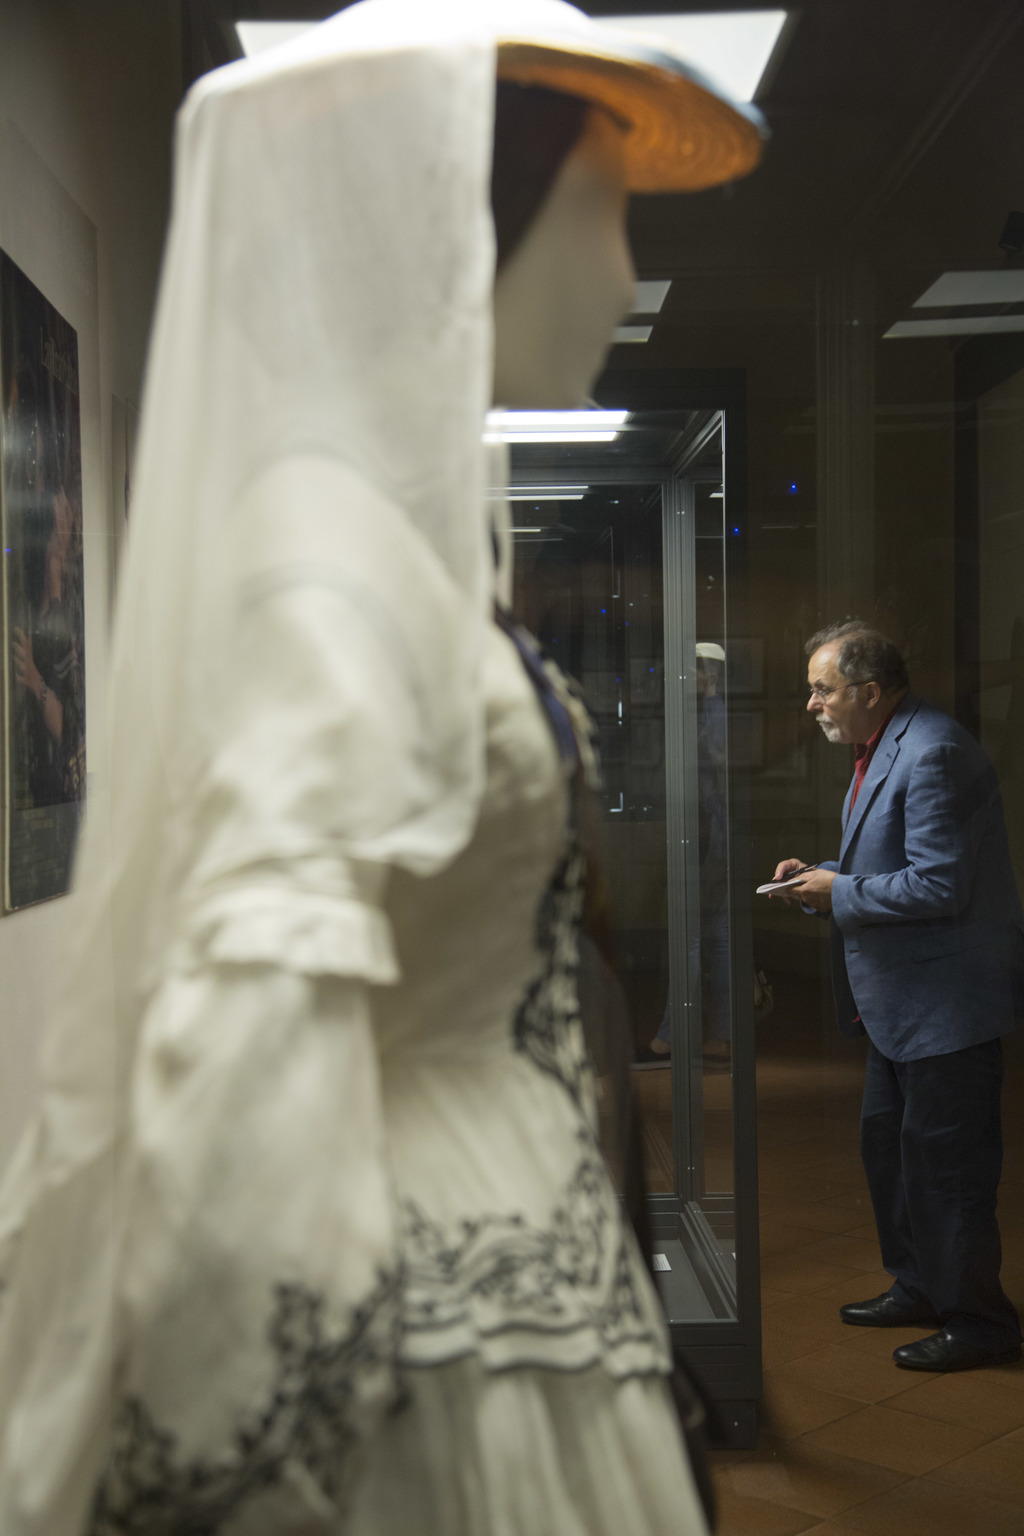 Journalists visit the Franco Zeffirelli International Centre for the Performing Arts during a preview in the late 17th century San Firenze Complex in ...